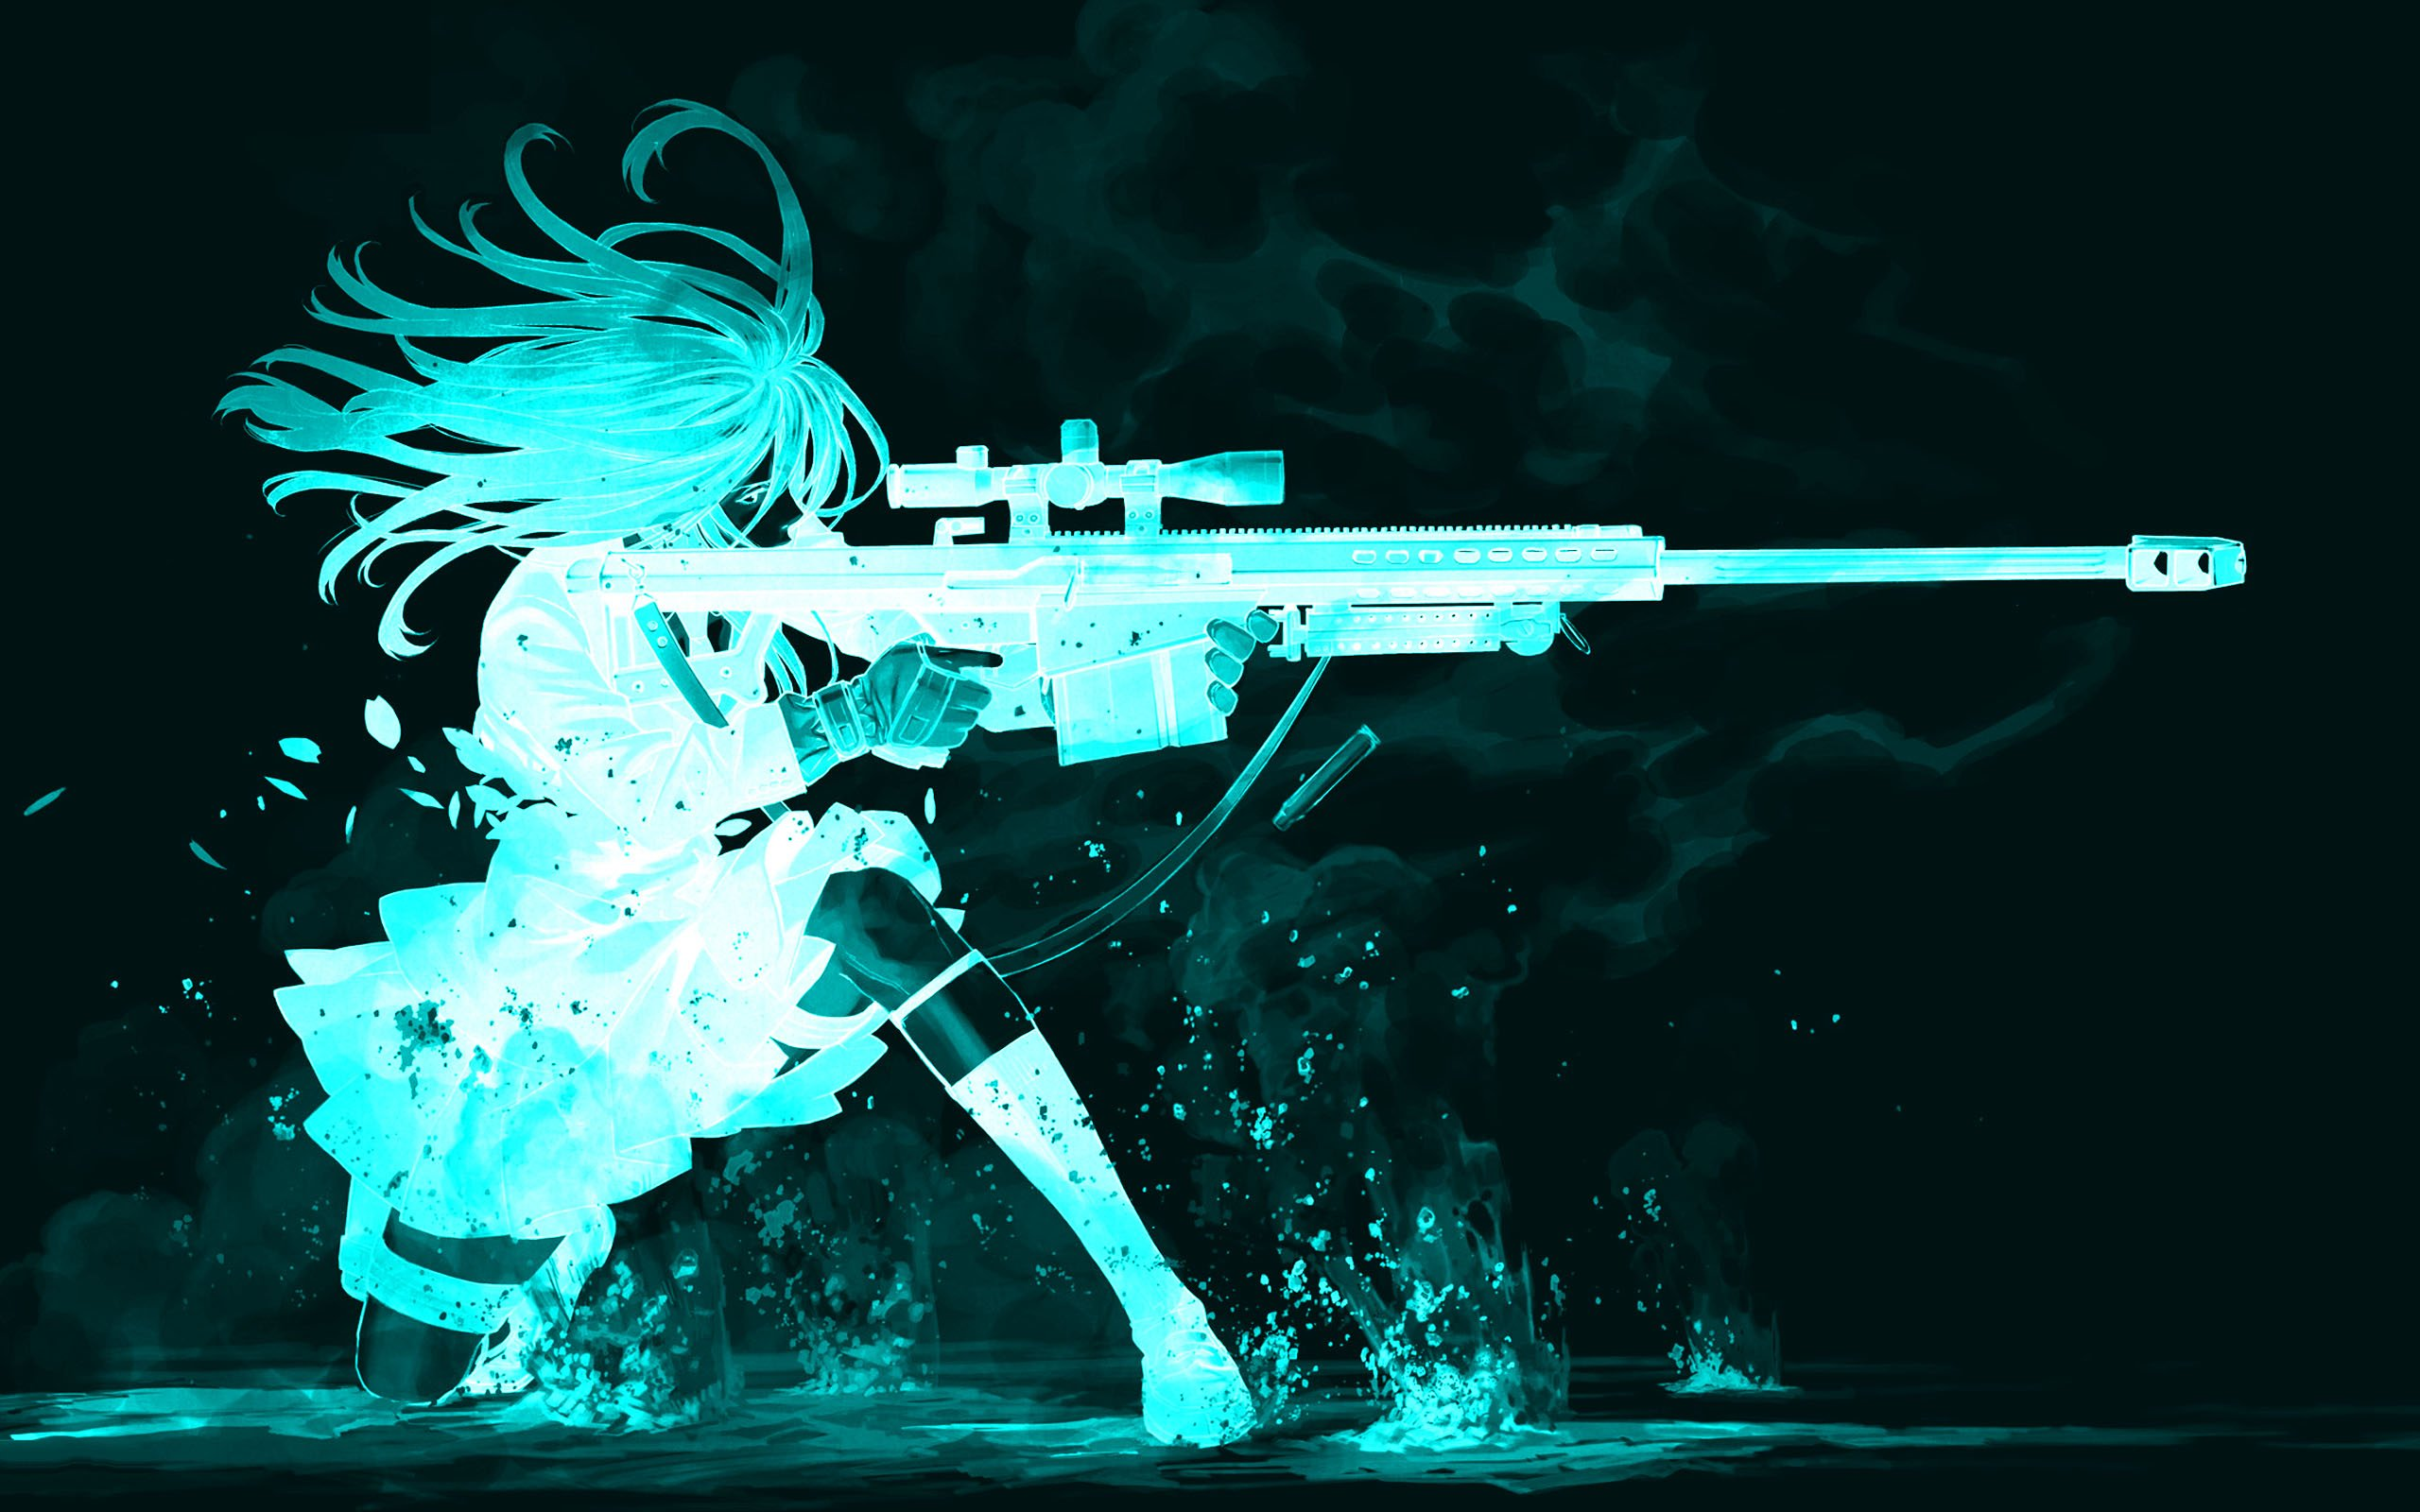 Gun Girl Computer Wallpapers Desktop Backgrounds 2560x1600 ID 2560x1600